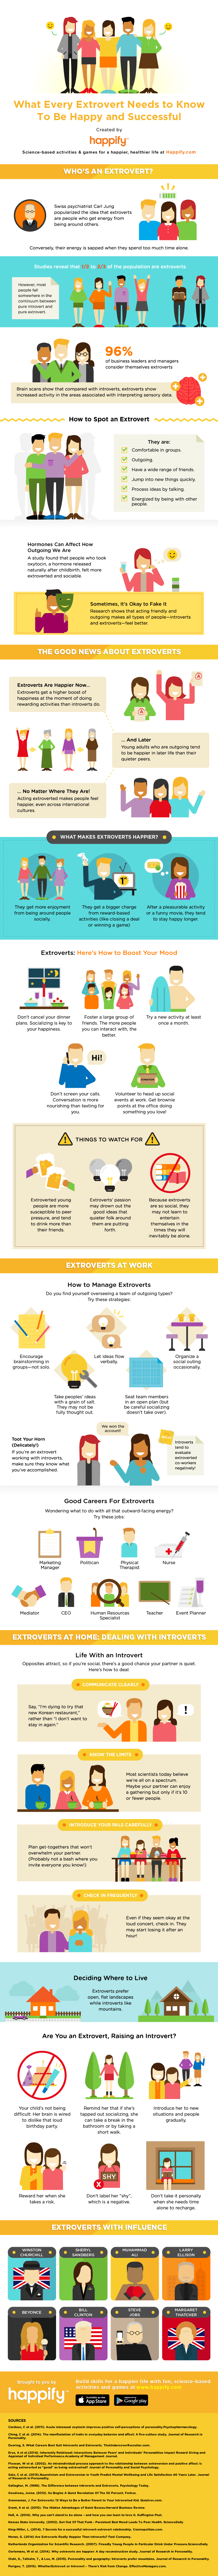 extrovert-guide-happiness-infographic.png